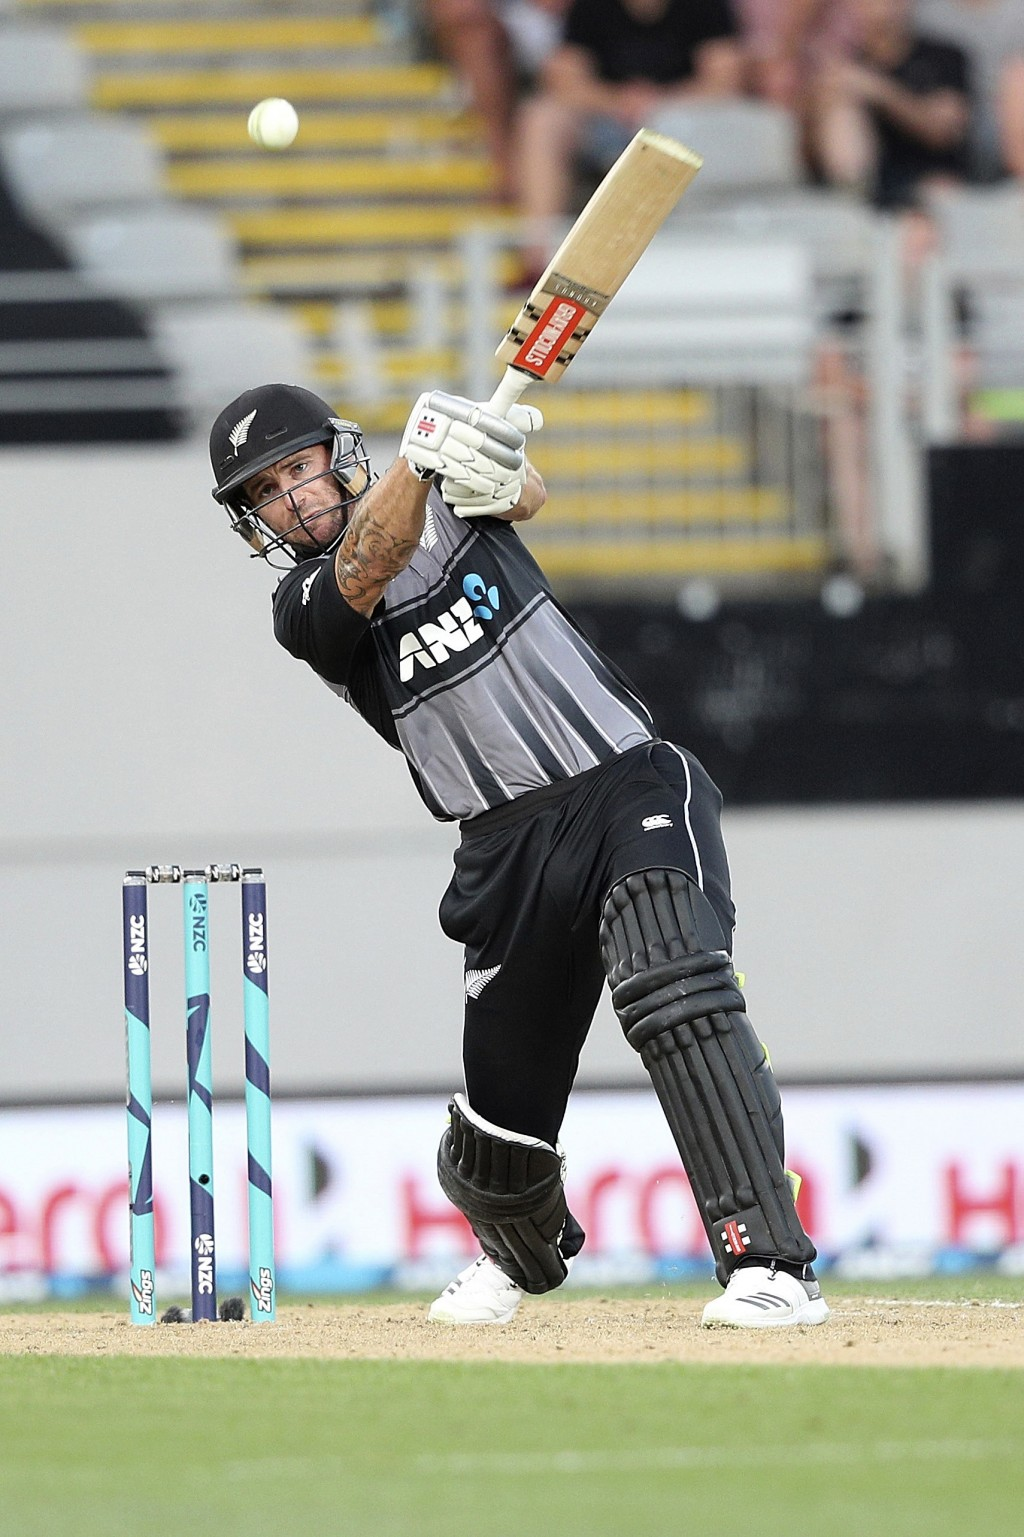 New Zealand's Doug Bracewell bats during their twenty/20 cricket international at Eden Park in Auckland, New Zealand, Friday, Jan. 11, 2019. (AP Photo